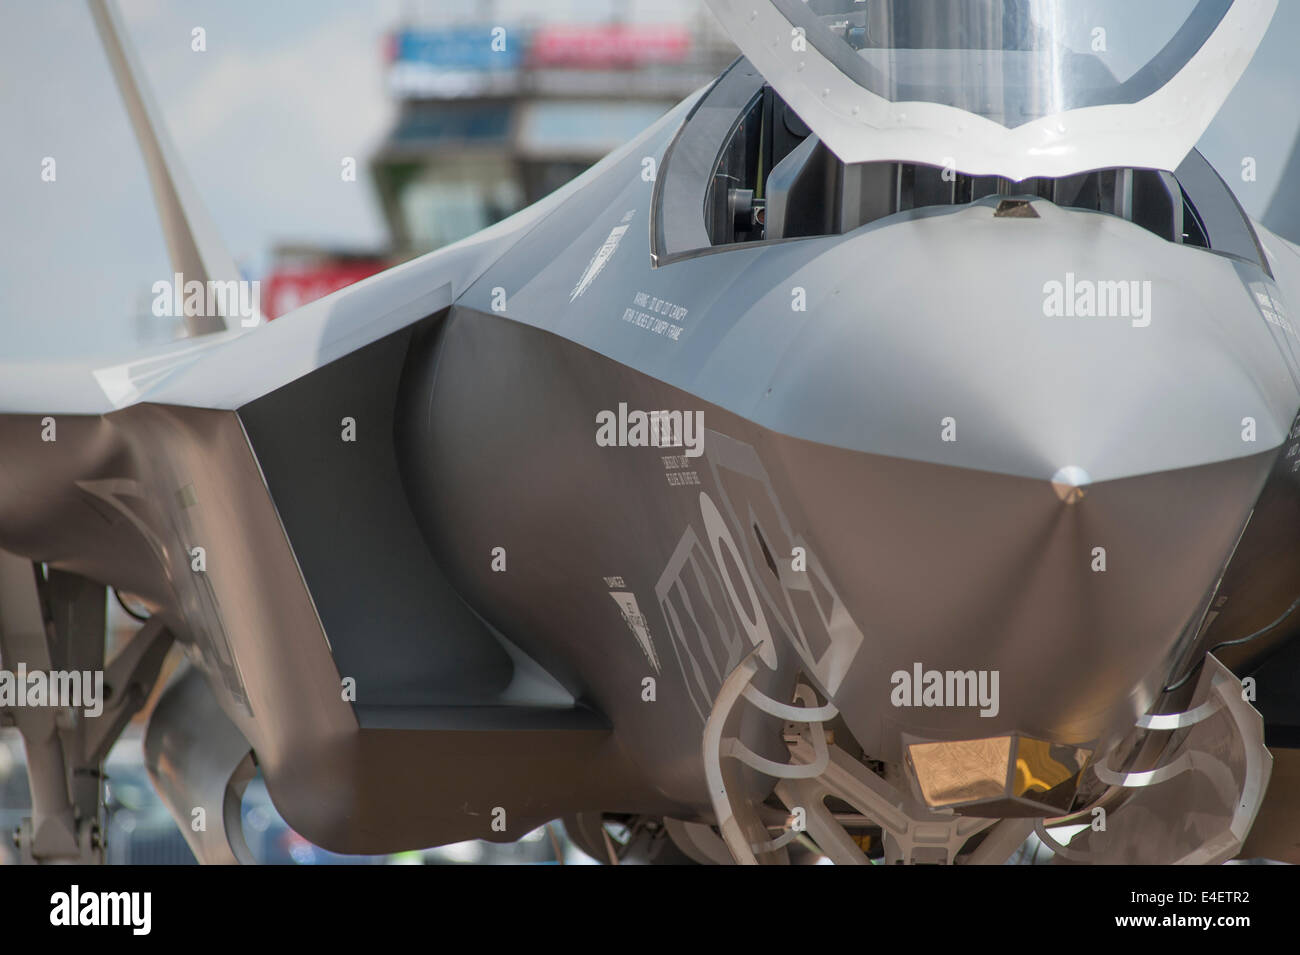 RAF Fairford, Gloucestershire UK. 9th July 2014. Lockheed Martin F35 Lightning fifth generation stealth aircraft - Stock Image